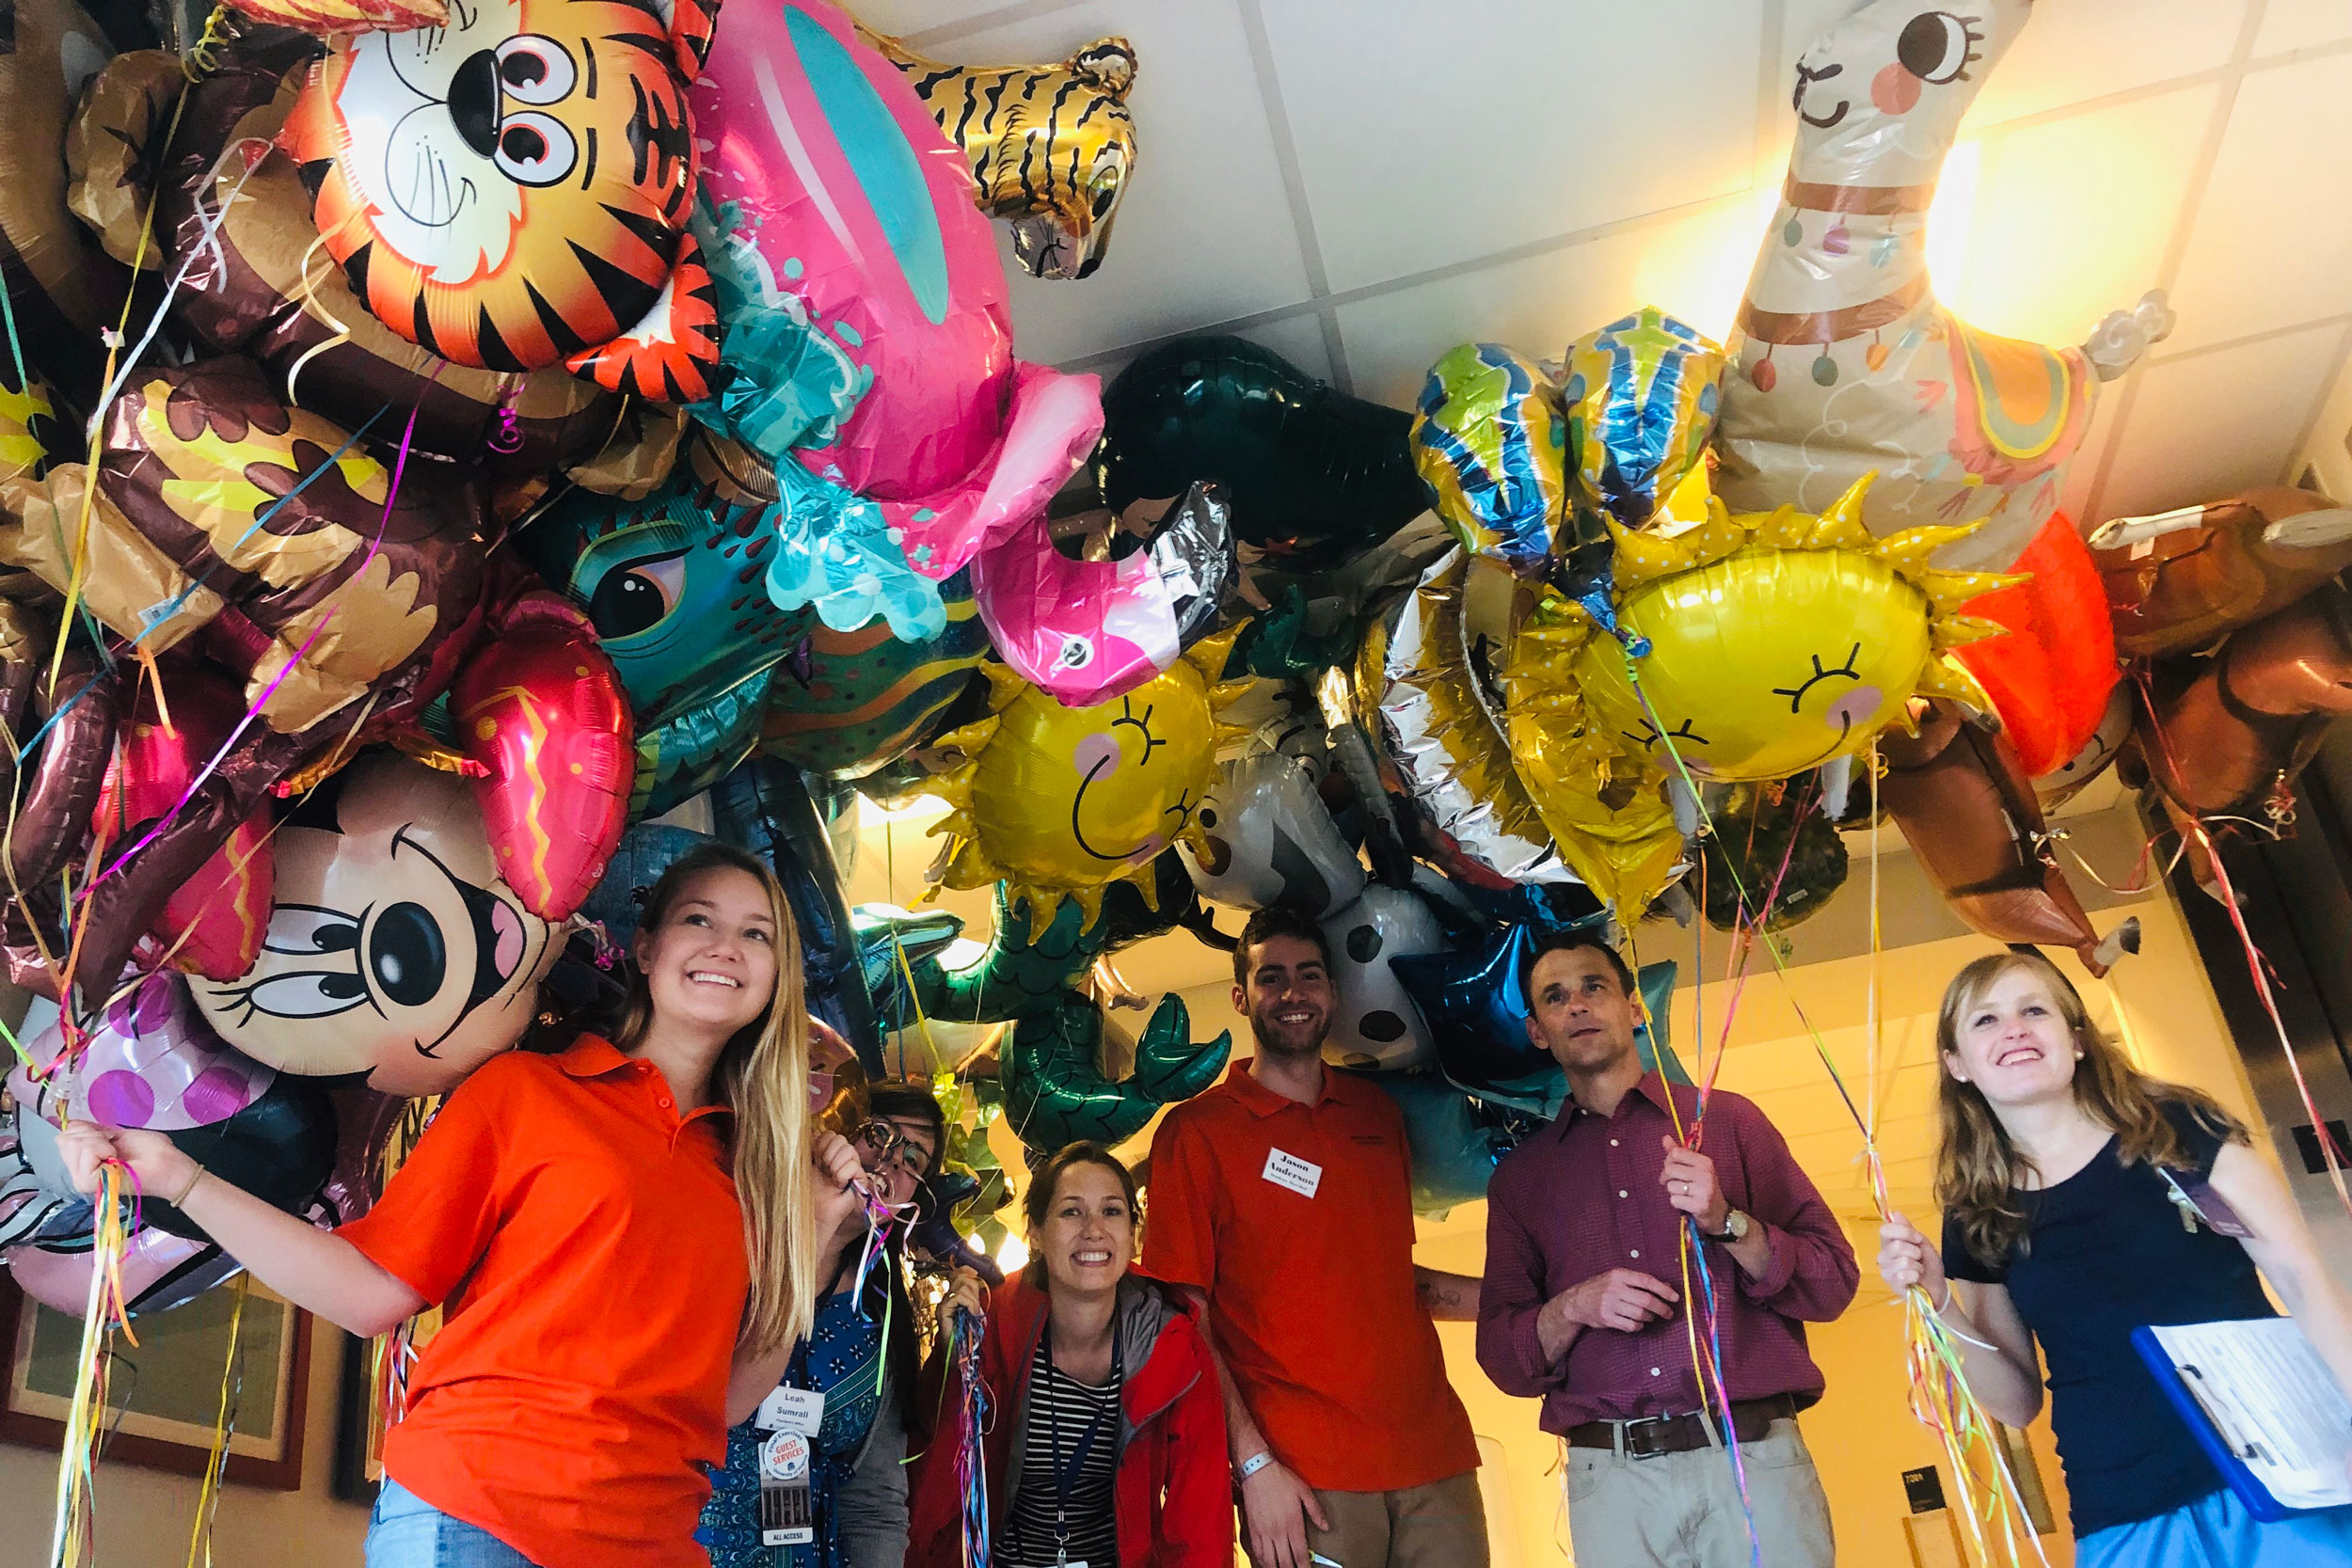 UVA President Jim Ryan, second from right, and members of his staff helped deliver the balloons to the hospital on Saturday. (Contributed photo)